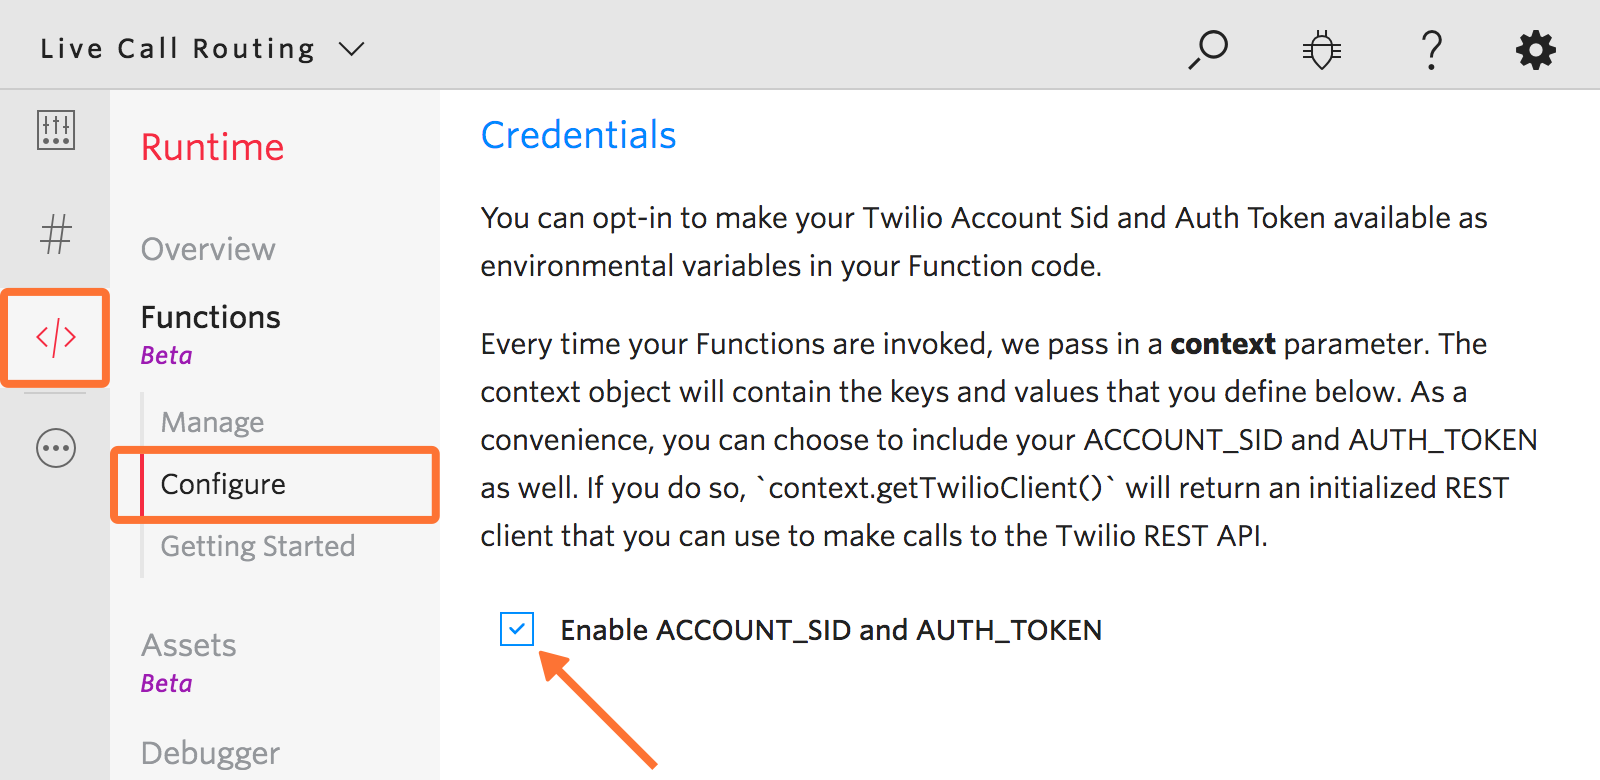 Twilio Live Call Routing Integration Guide | VictorOps Knowledge Base